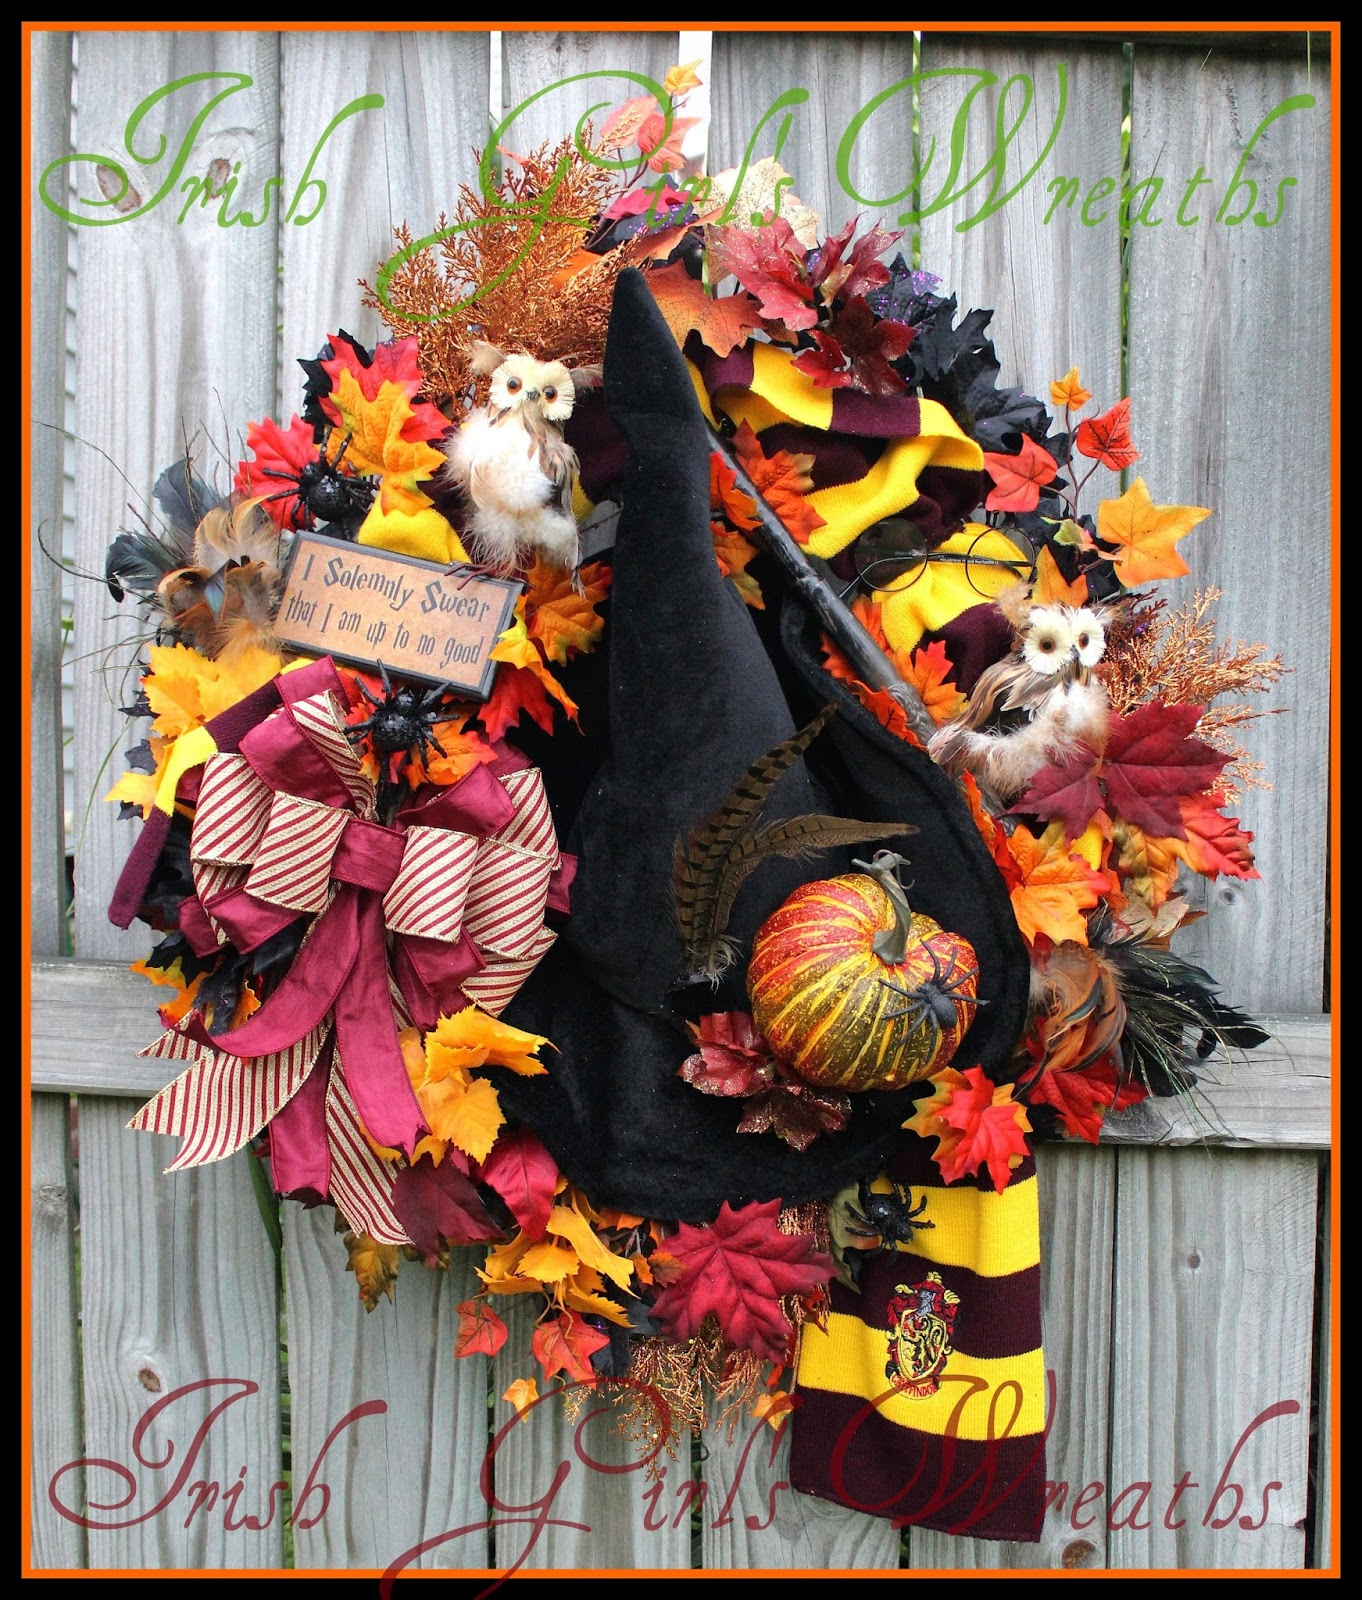 Harry Potter Hogwarts Halloween Wreath, Owl , Prof. McGonnagall Witch hat, Gryffindor